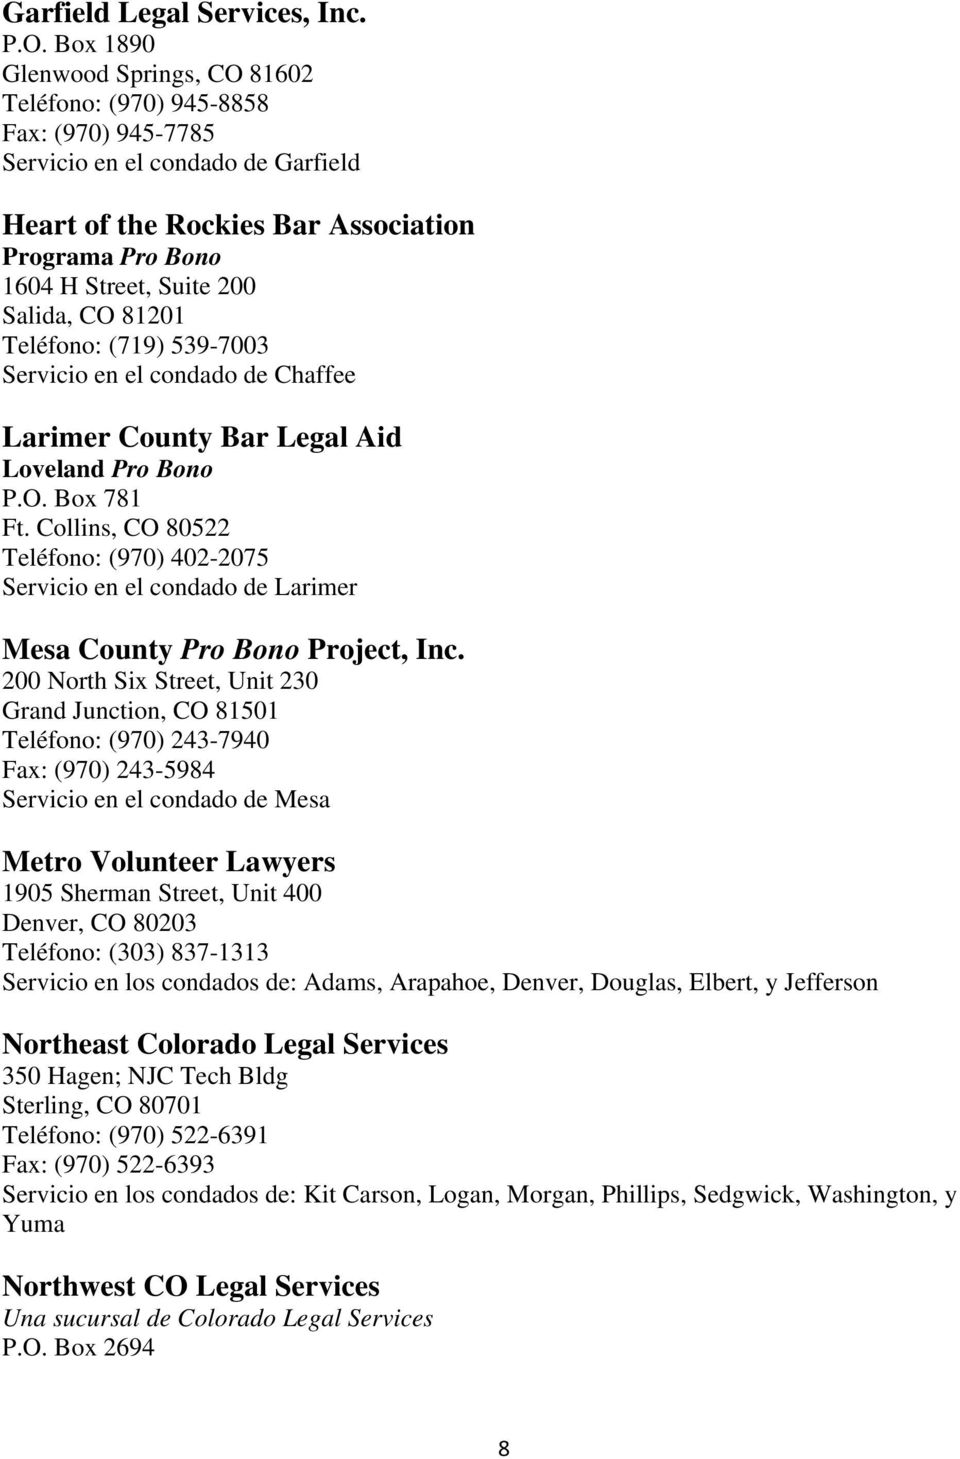 Salida, CO 81201 Teléfono: (719) 539-7003 Servicio en el condado de Chaffee Larimer County Bar Legal Aid Loveland Pro Bono P.O. Box 781 Ft.